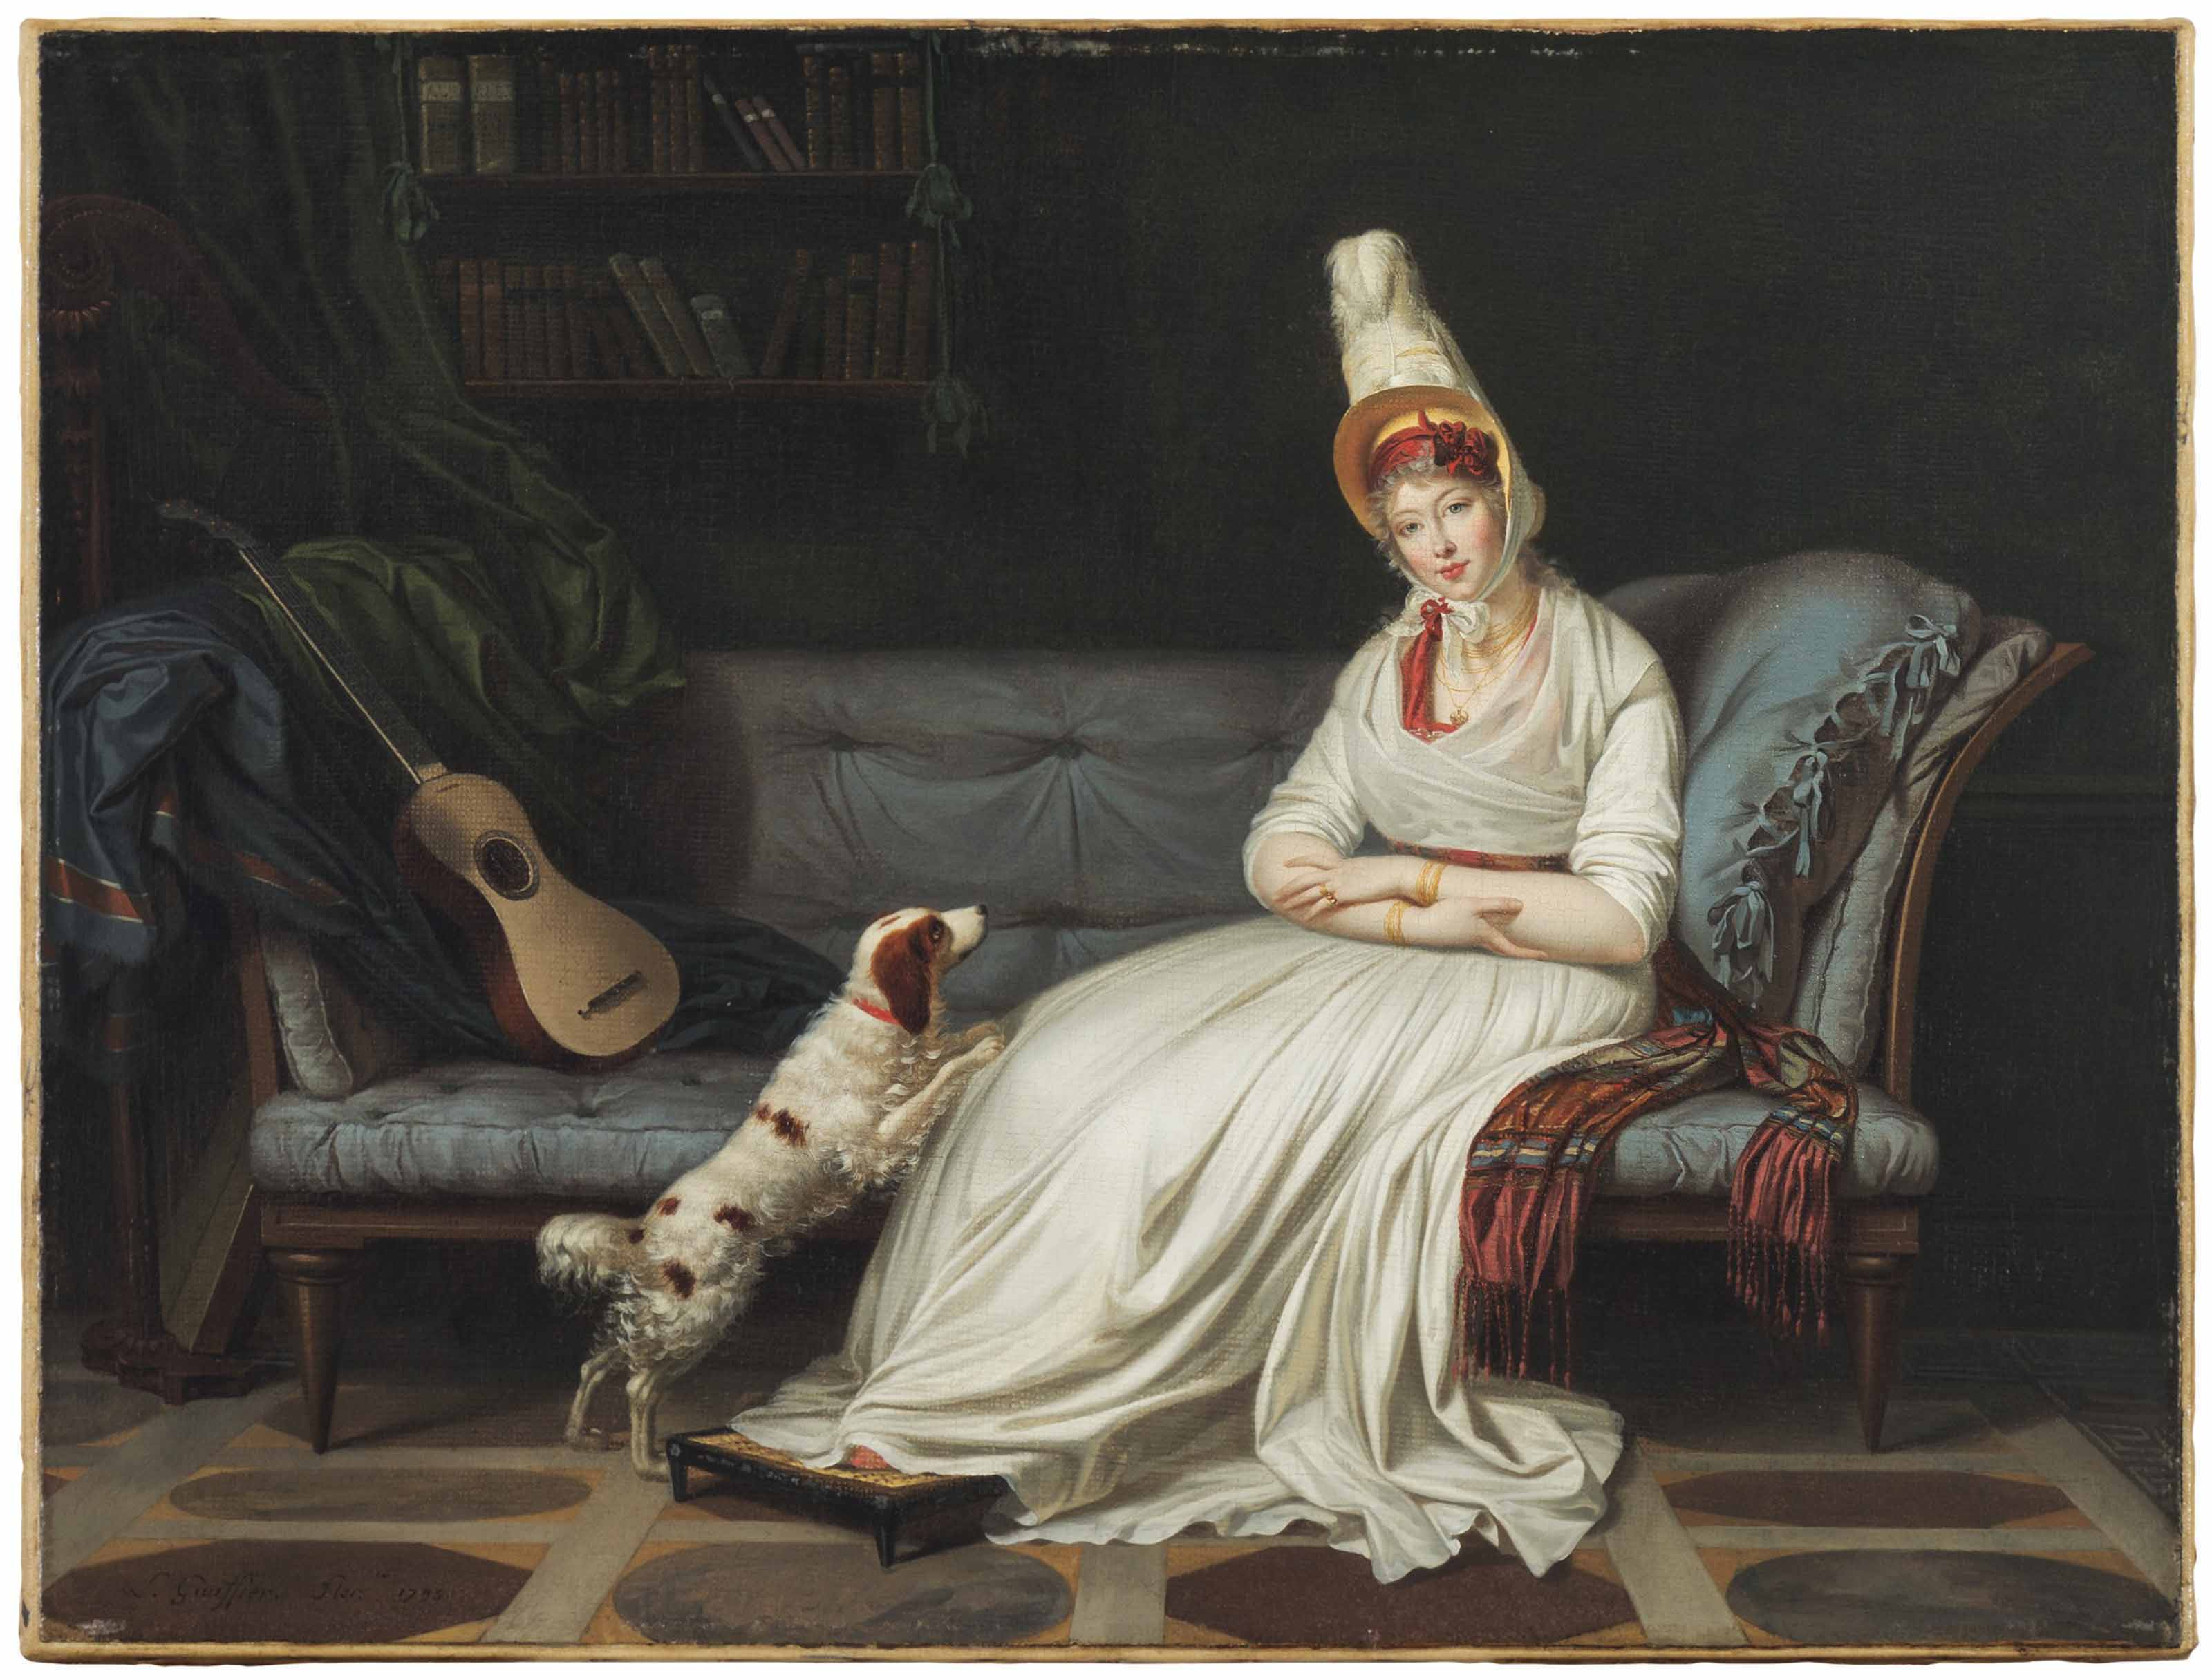 Portrait of Elizabeth, Lady Webster, later Lady Holland (1771-1845), full-length, in a white dress and feathered hat, with her spaniel, Pierrot, on a chaise-longue, with a guitar